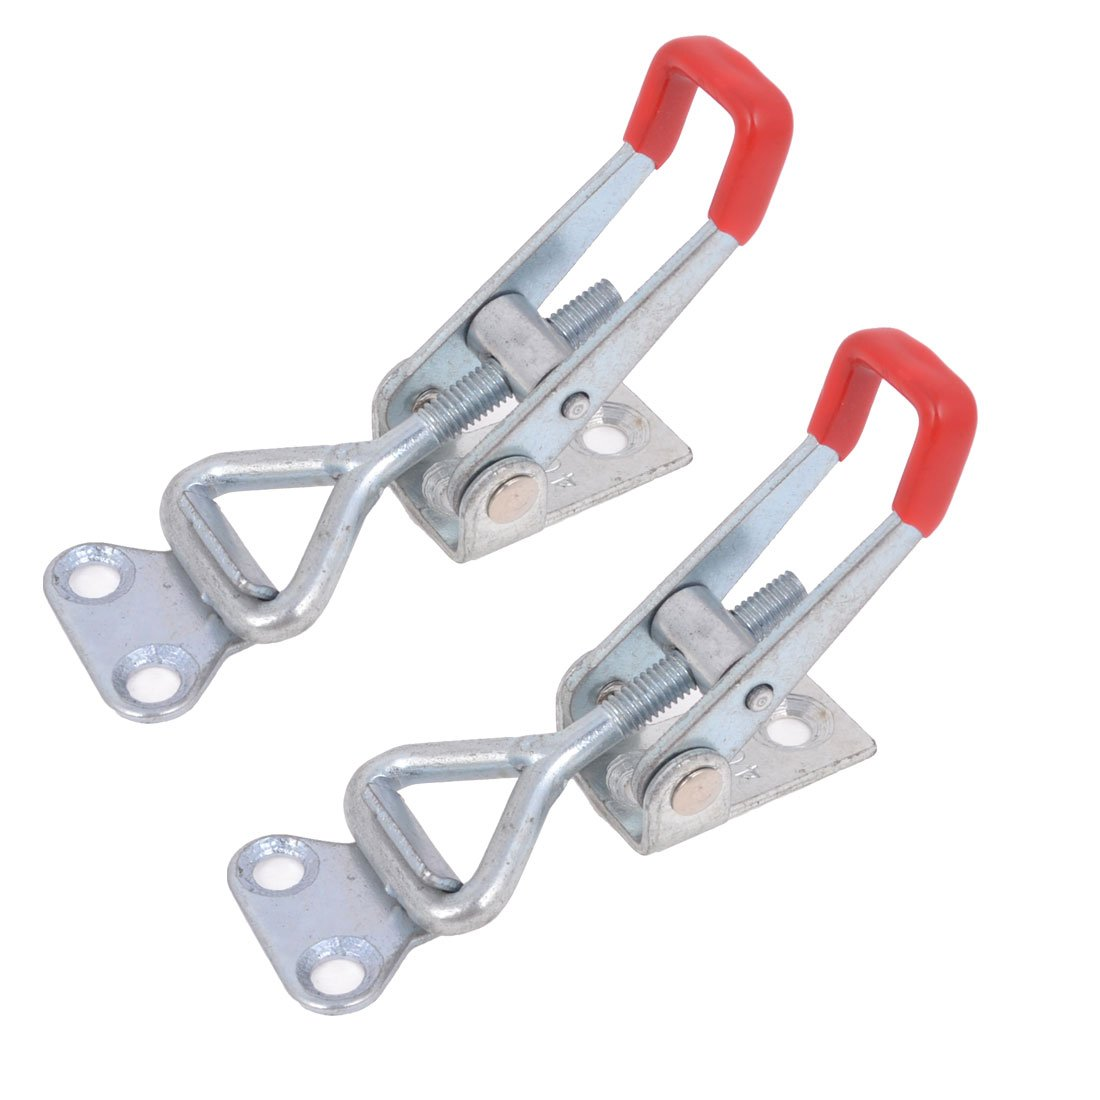 Uxcell (a14052800ux0036) 4001 100Kg 220-Pound Triangle Shaped Lever Latch Toggle Clamp, 2-Piece